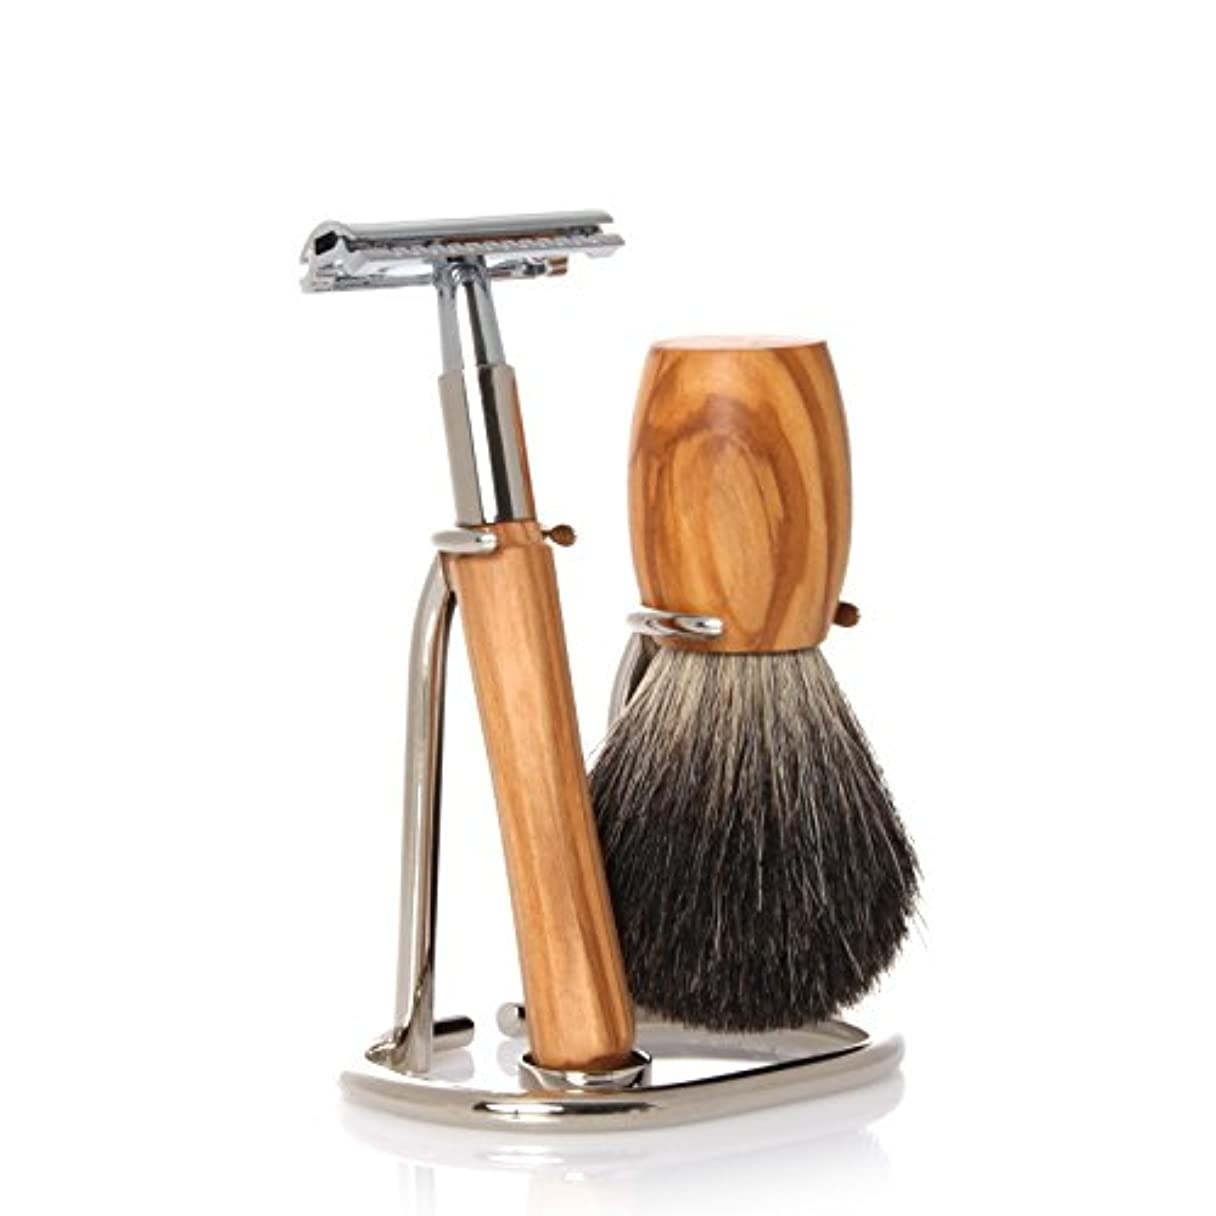 素晴らしいですラベンダーできないGOLDDACHS Shaving Set, Safety razor, 100% badger hair, olive wood